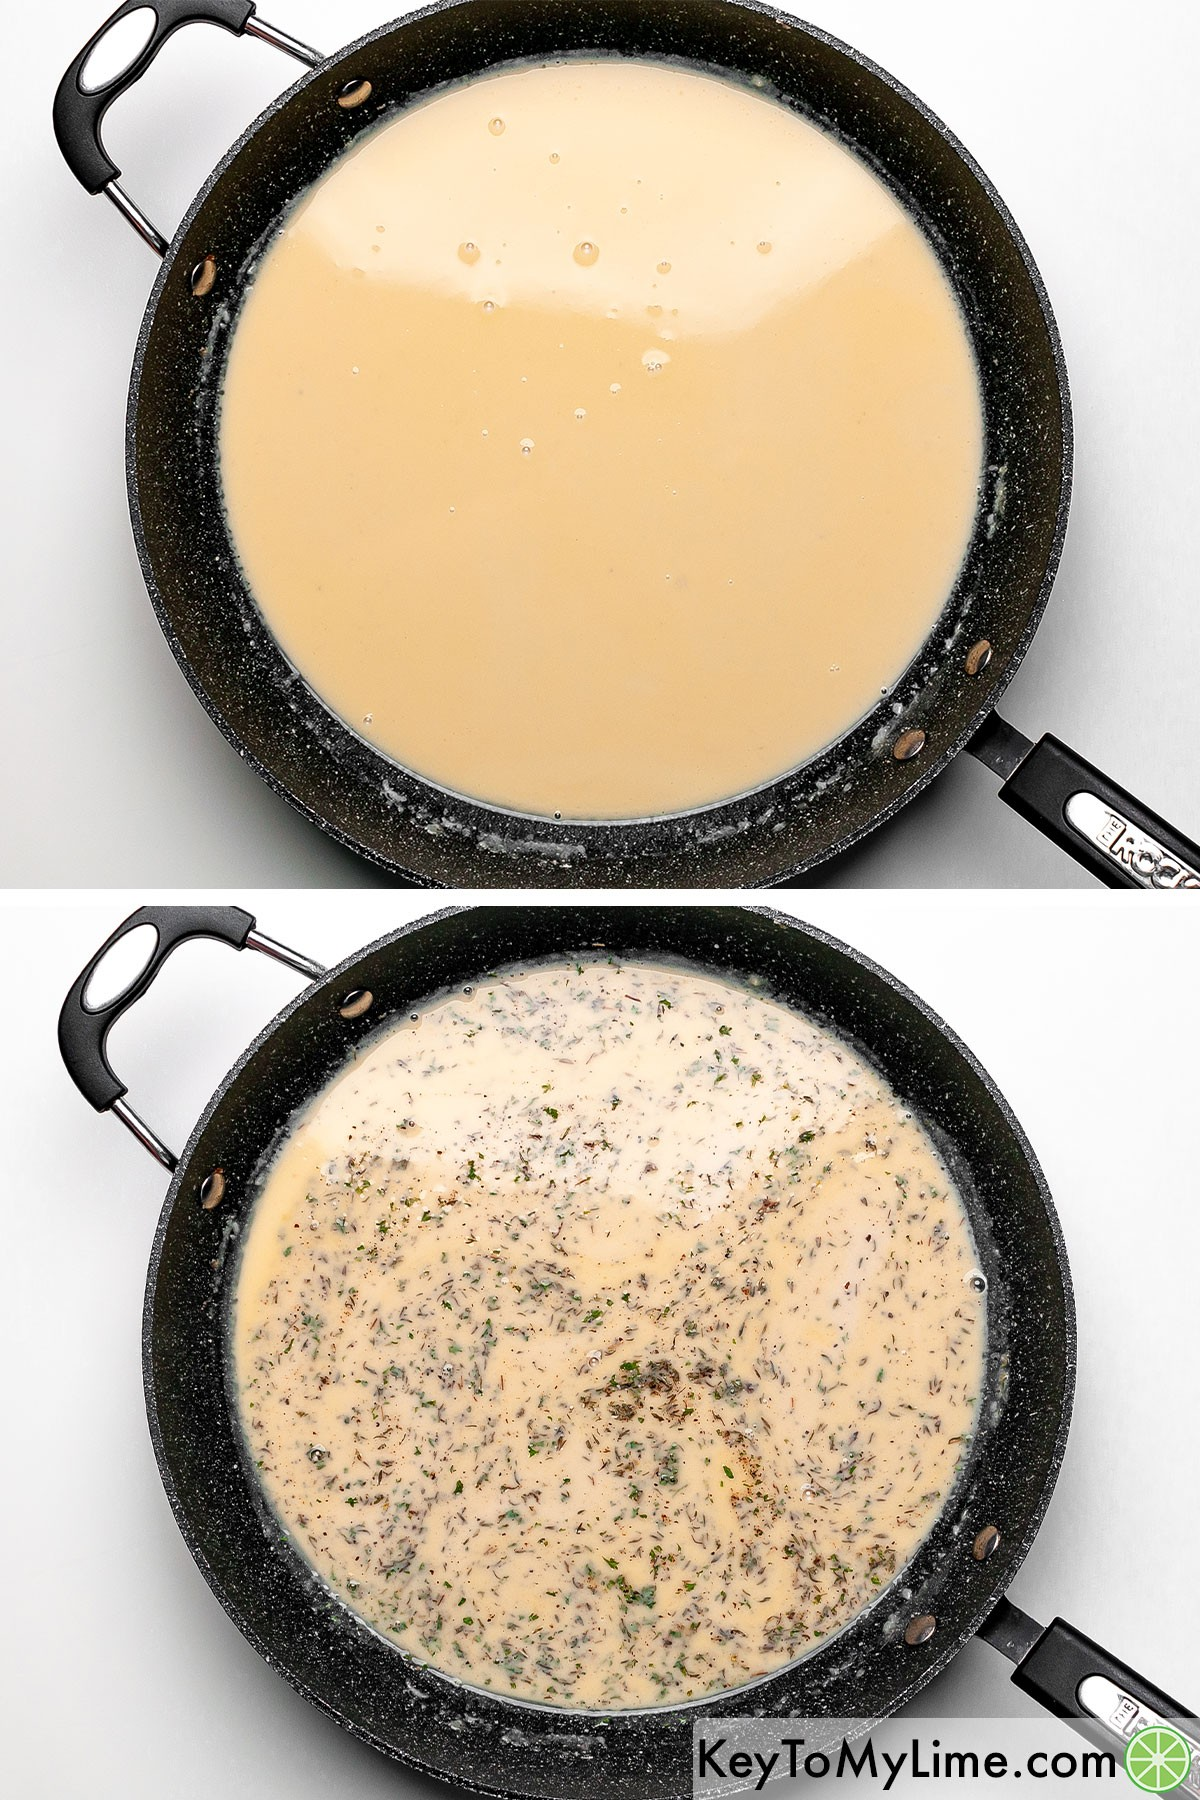 A process collage showing adding seasonings to a thick creamy sauce.